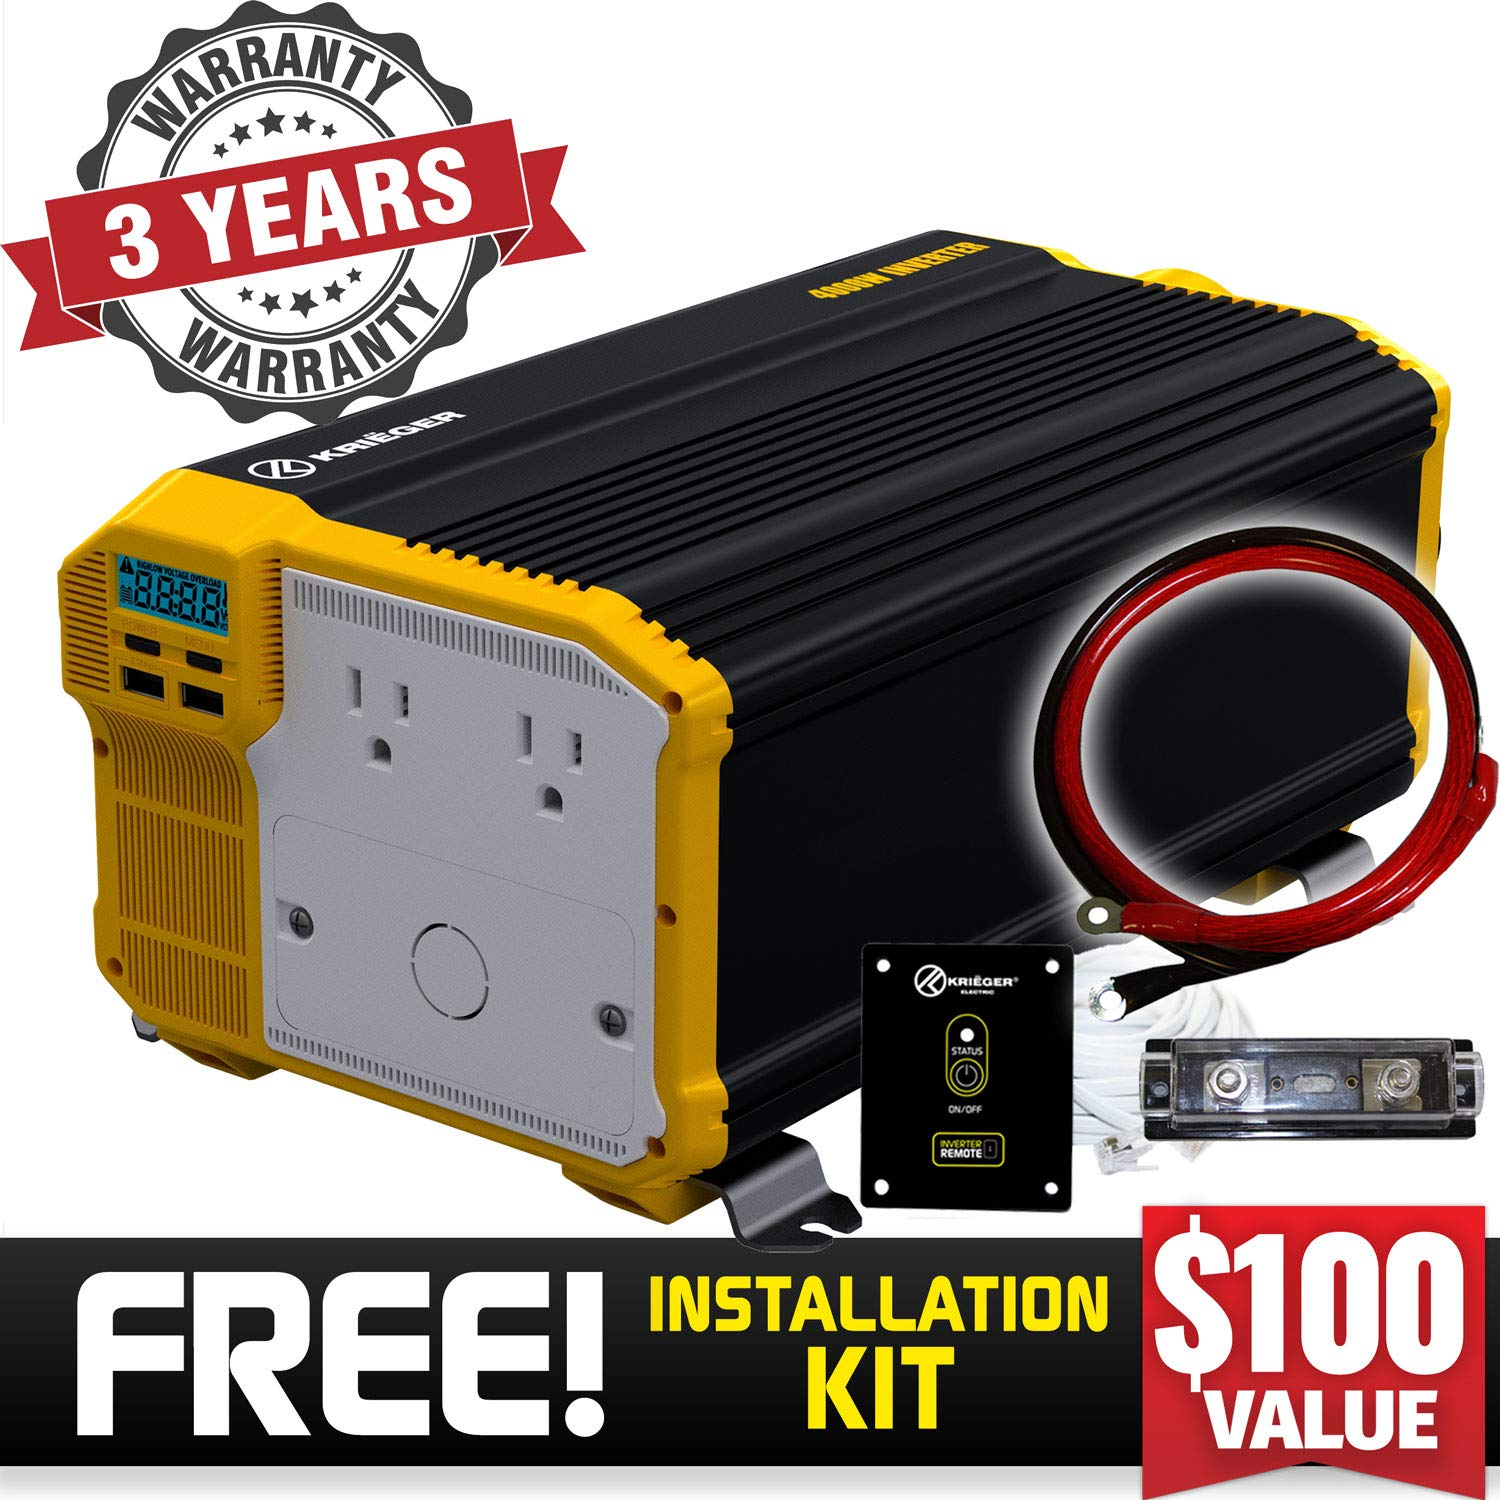 Krieger 4000 Watt 12V Power Inverter Dual 110V AC Outlets, Installation Kit Included, Back Up Power Supply Perfect for an Emergency, Hurricane, Storm or Outage - MET Approved to UL and CSA Standards by K KRIËGER